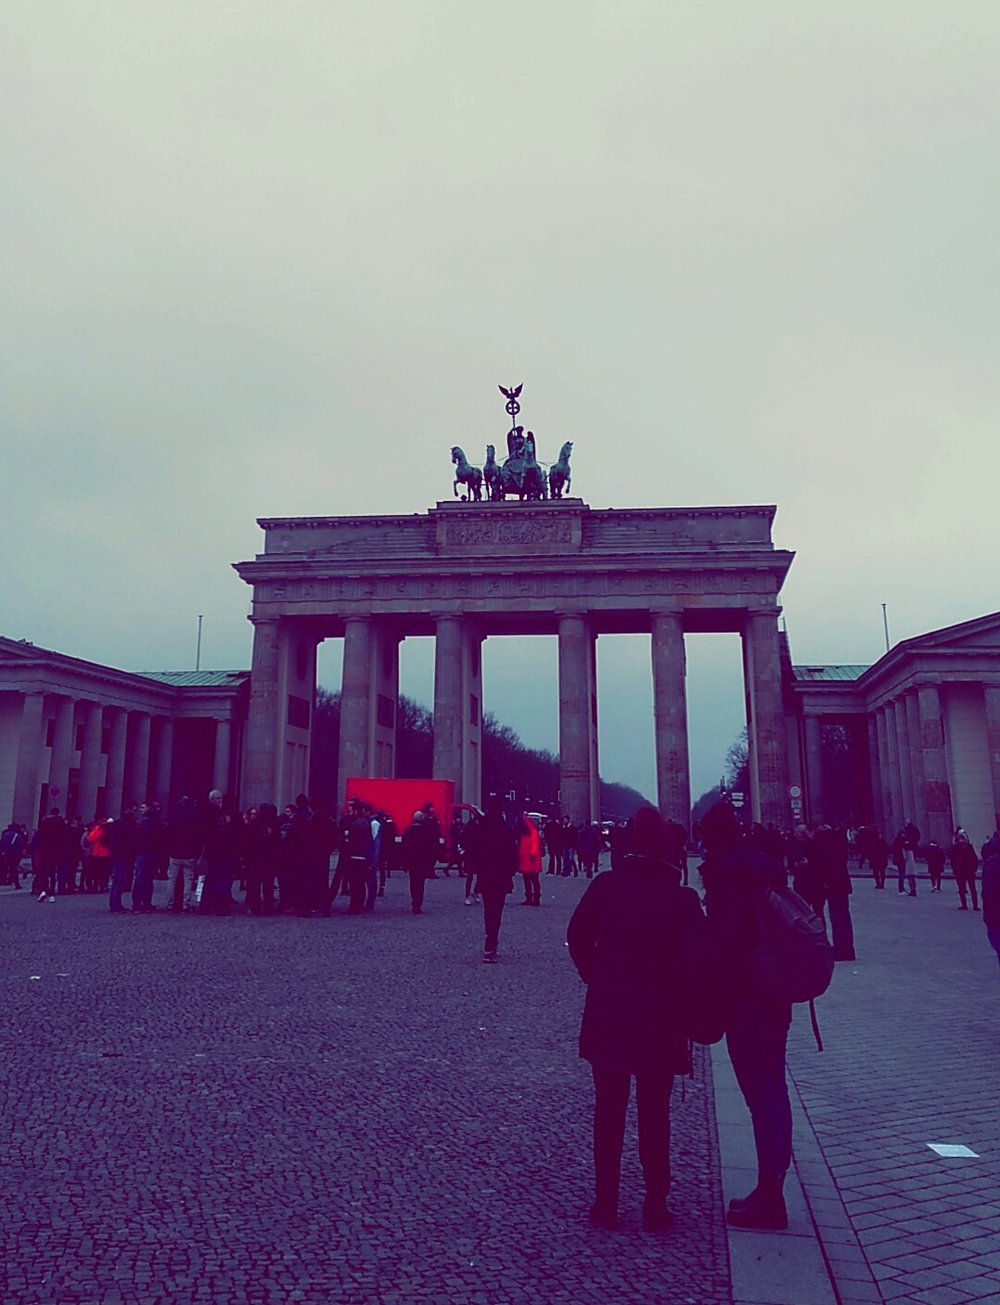 The remaining protesters amongst the usual Brandenburger Tor tourists.